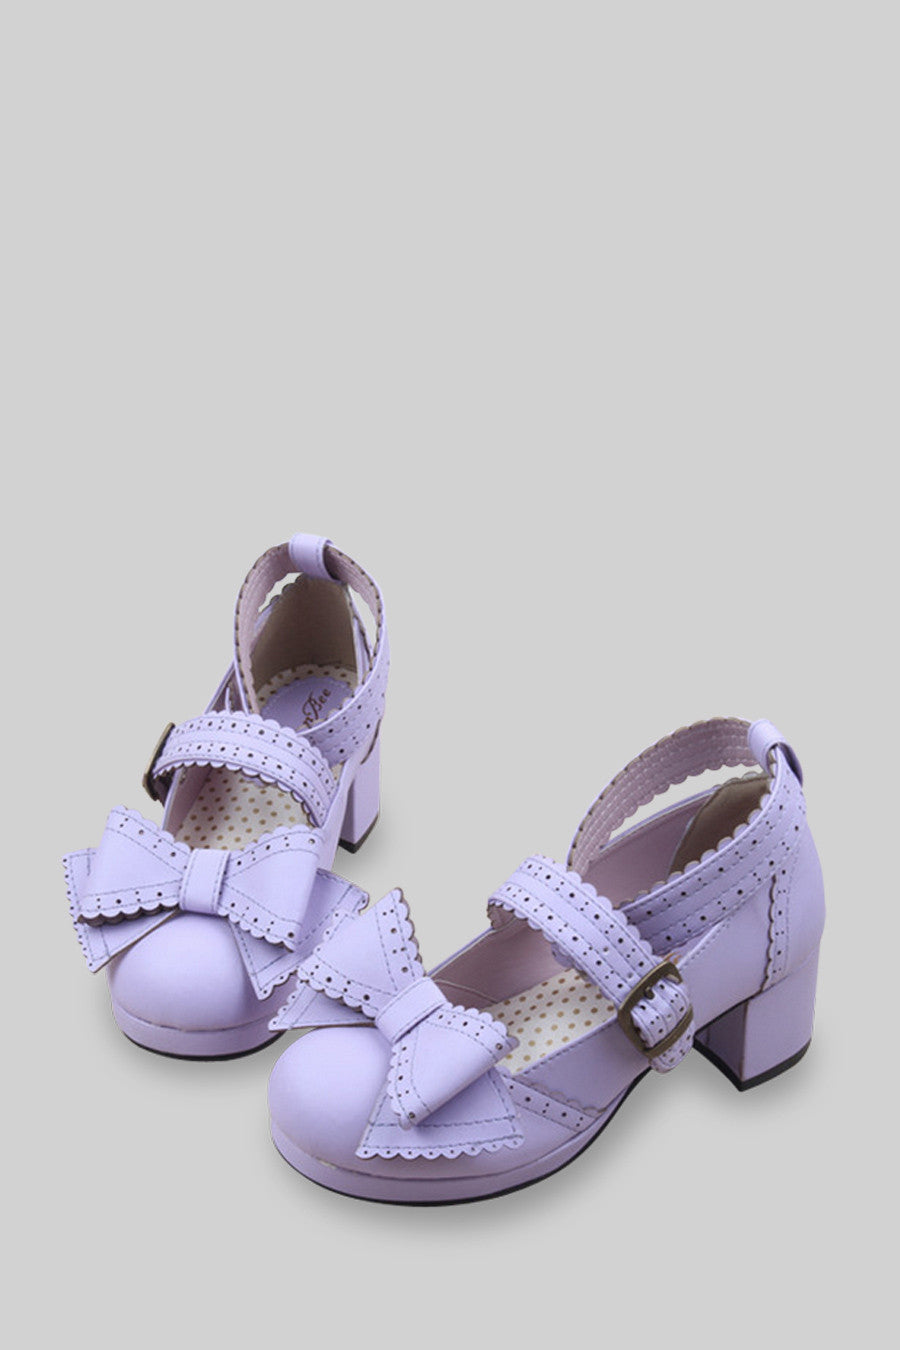 Lolita Platform Shoes In Lilac